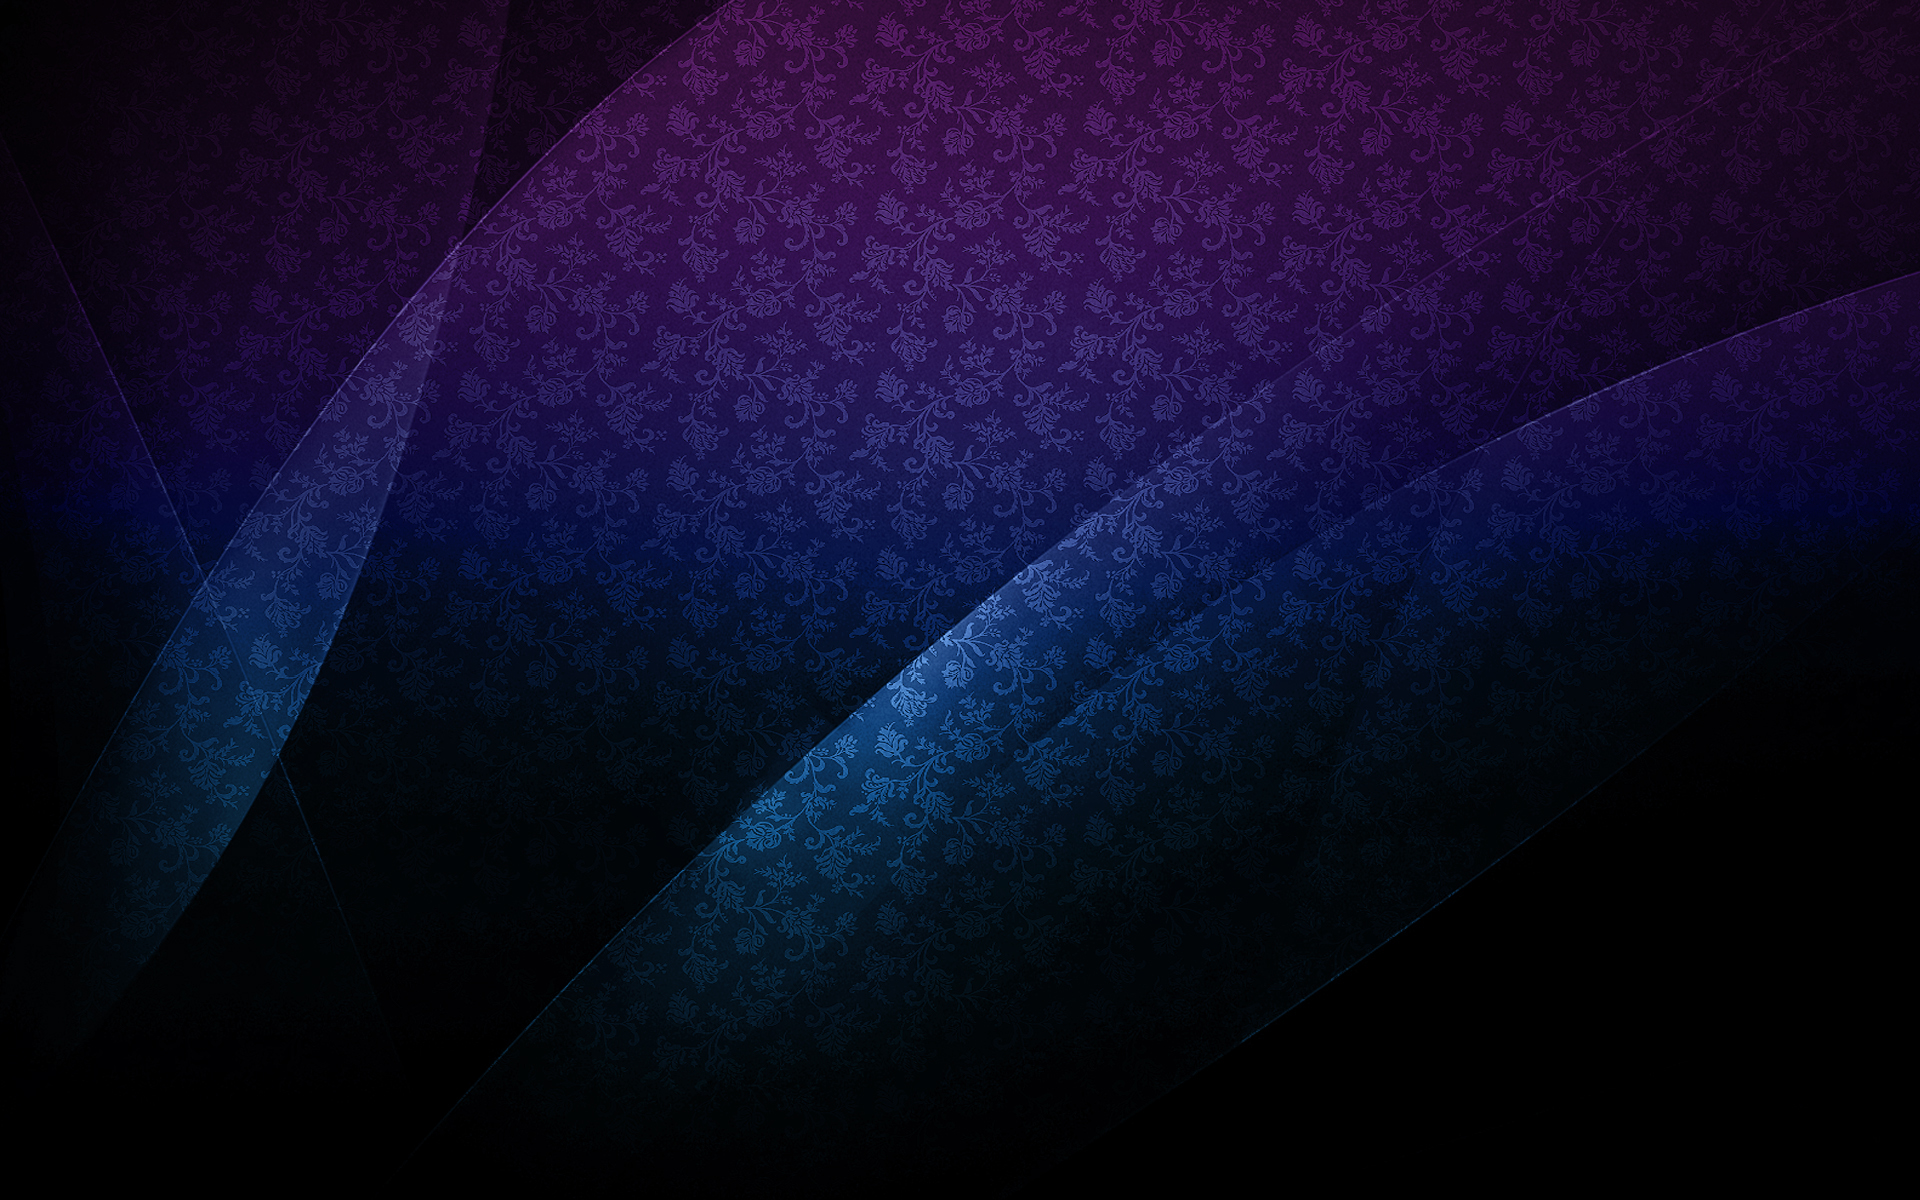 Abstract Patterns Gradient Wallpaper